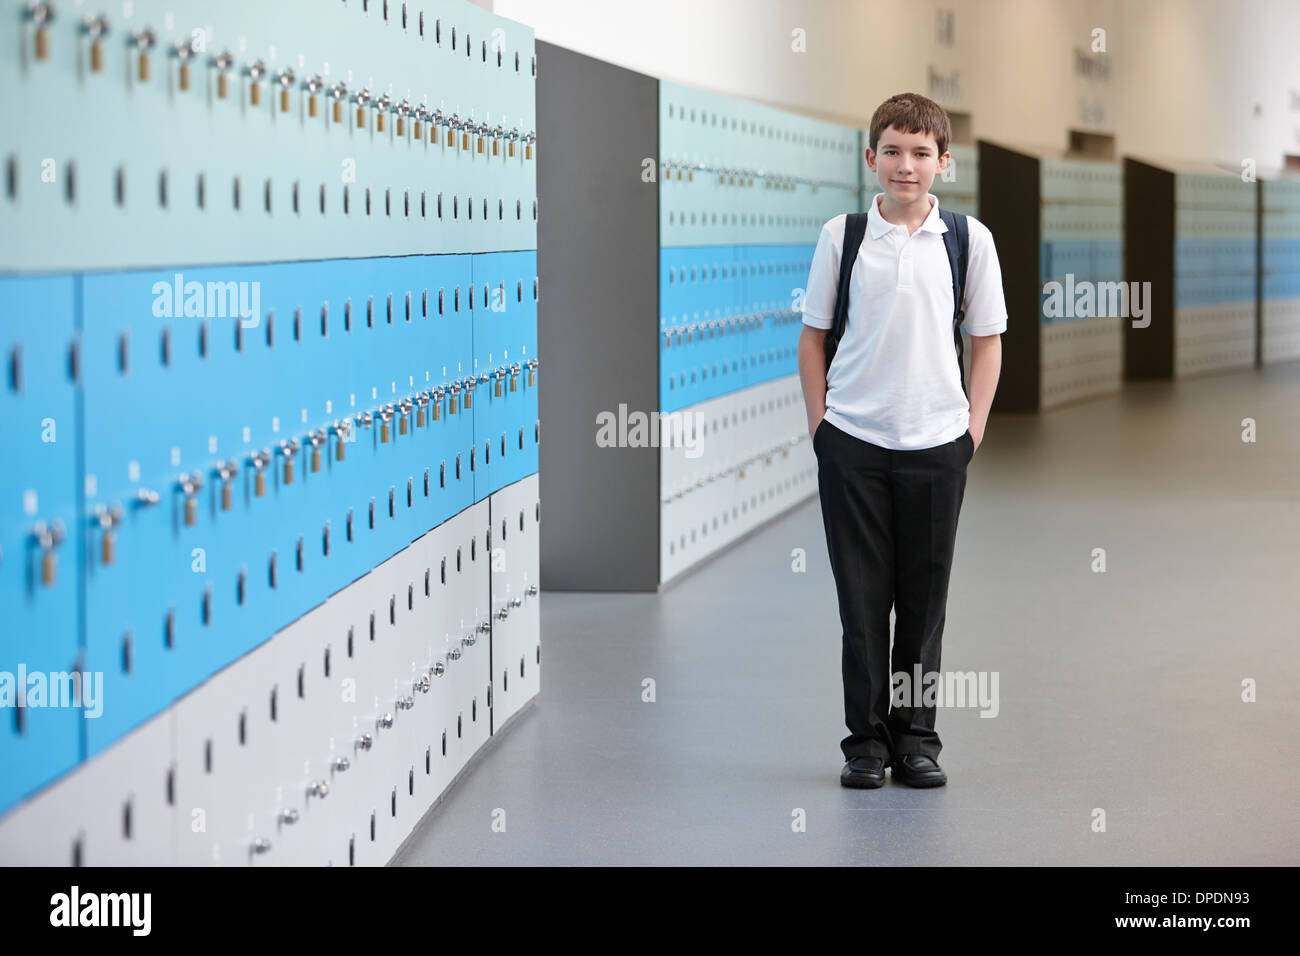 Portrait of schoolboy with hands in pockets in school corridor - Stock Image